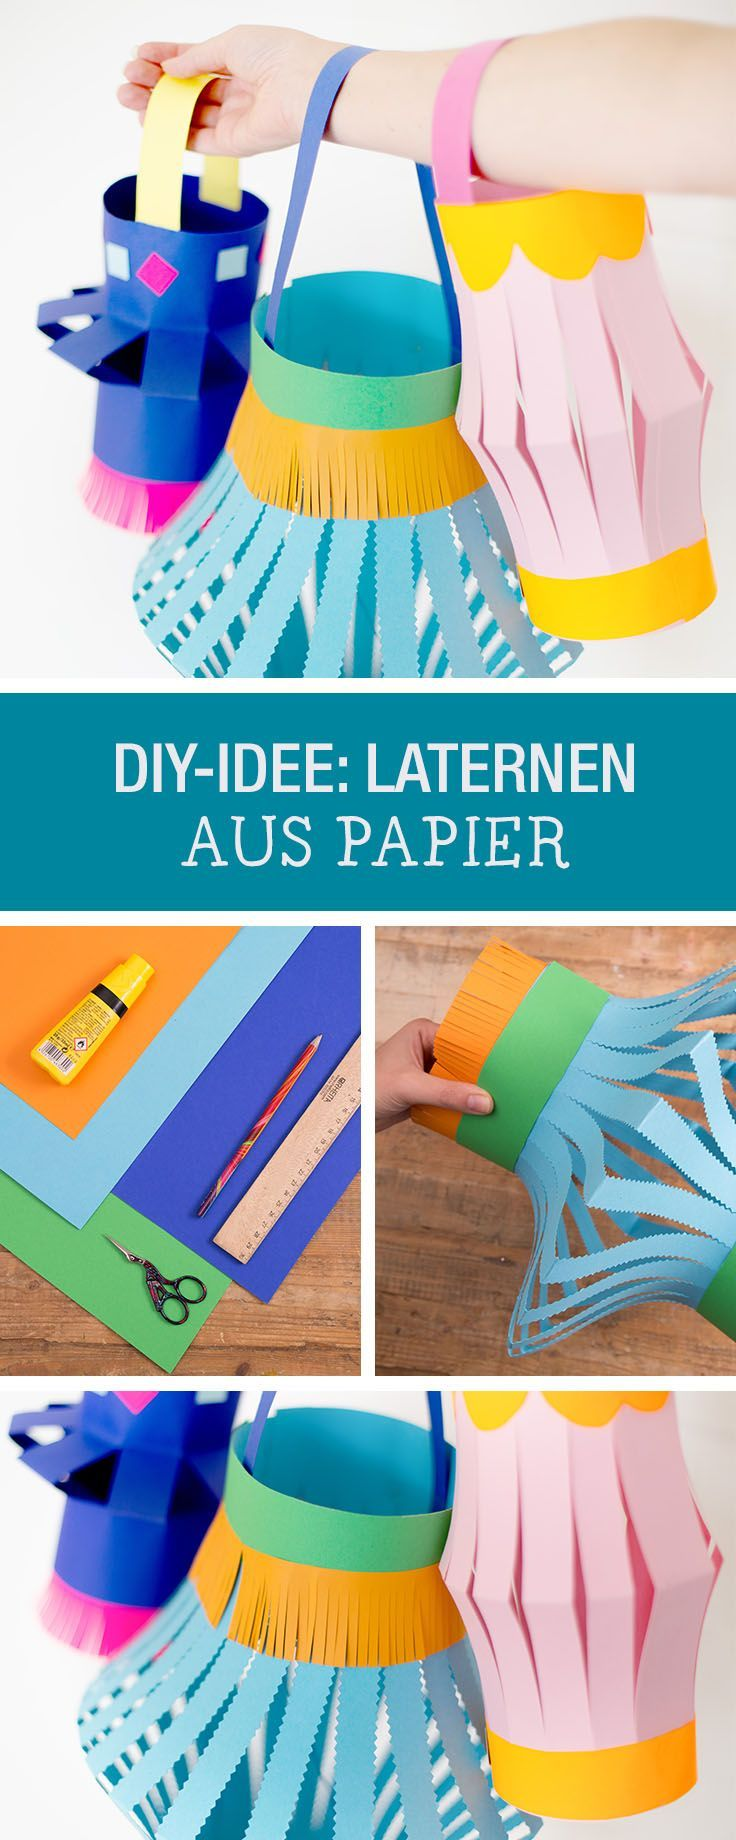 DIY-Anleitung: Laternen aus Papier herstellen, Accessoires für Kinder auf Laternenumzug / DIY tutorial: crafting paper lantern, accessories for children on lantern parade via DaWanda.com